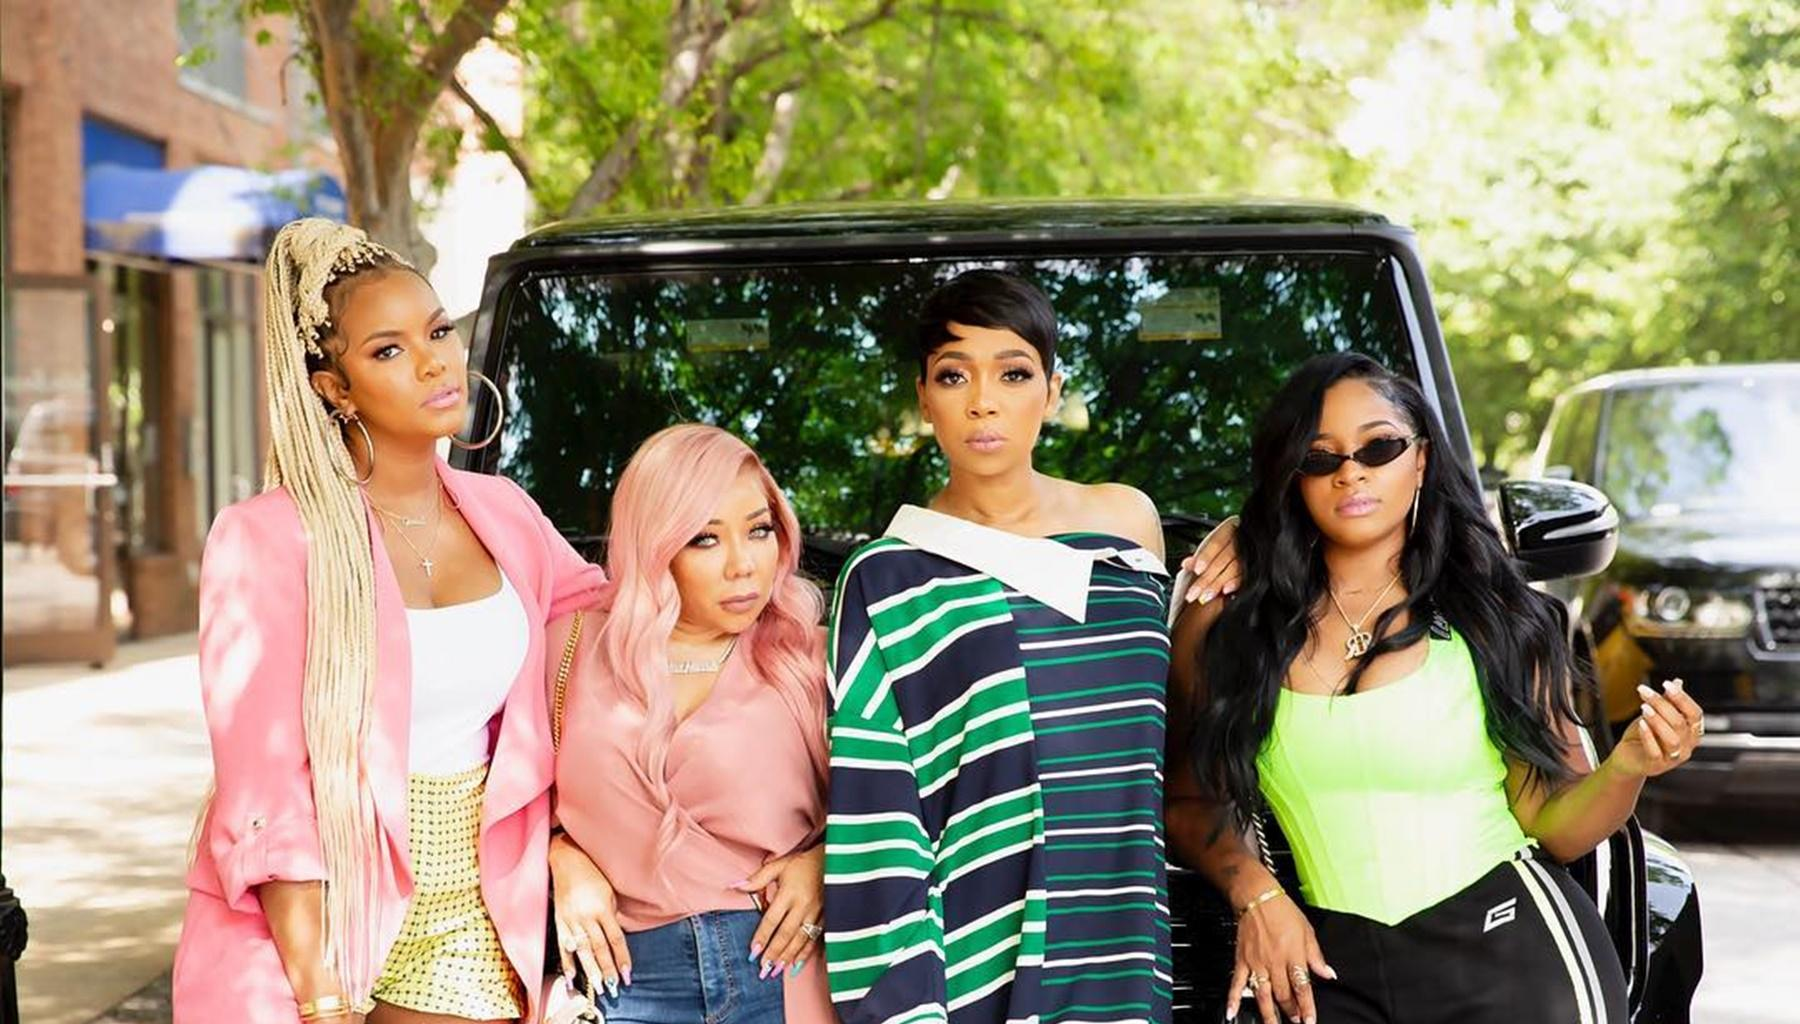 Monica Brown's Feet Steal The Spotlight In Sisterhood Picture With Tiny Harris , Toya Wright, And LeToya Luckett